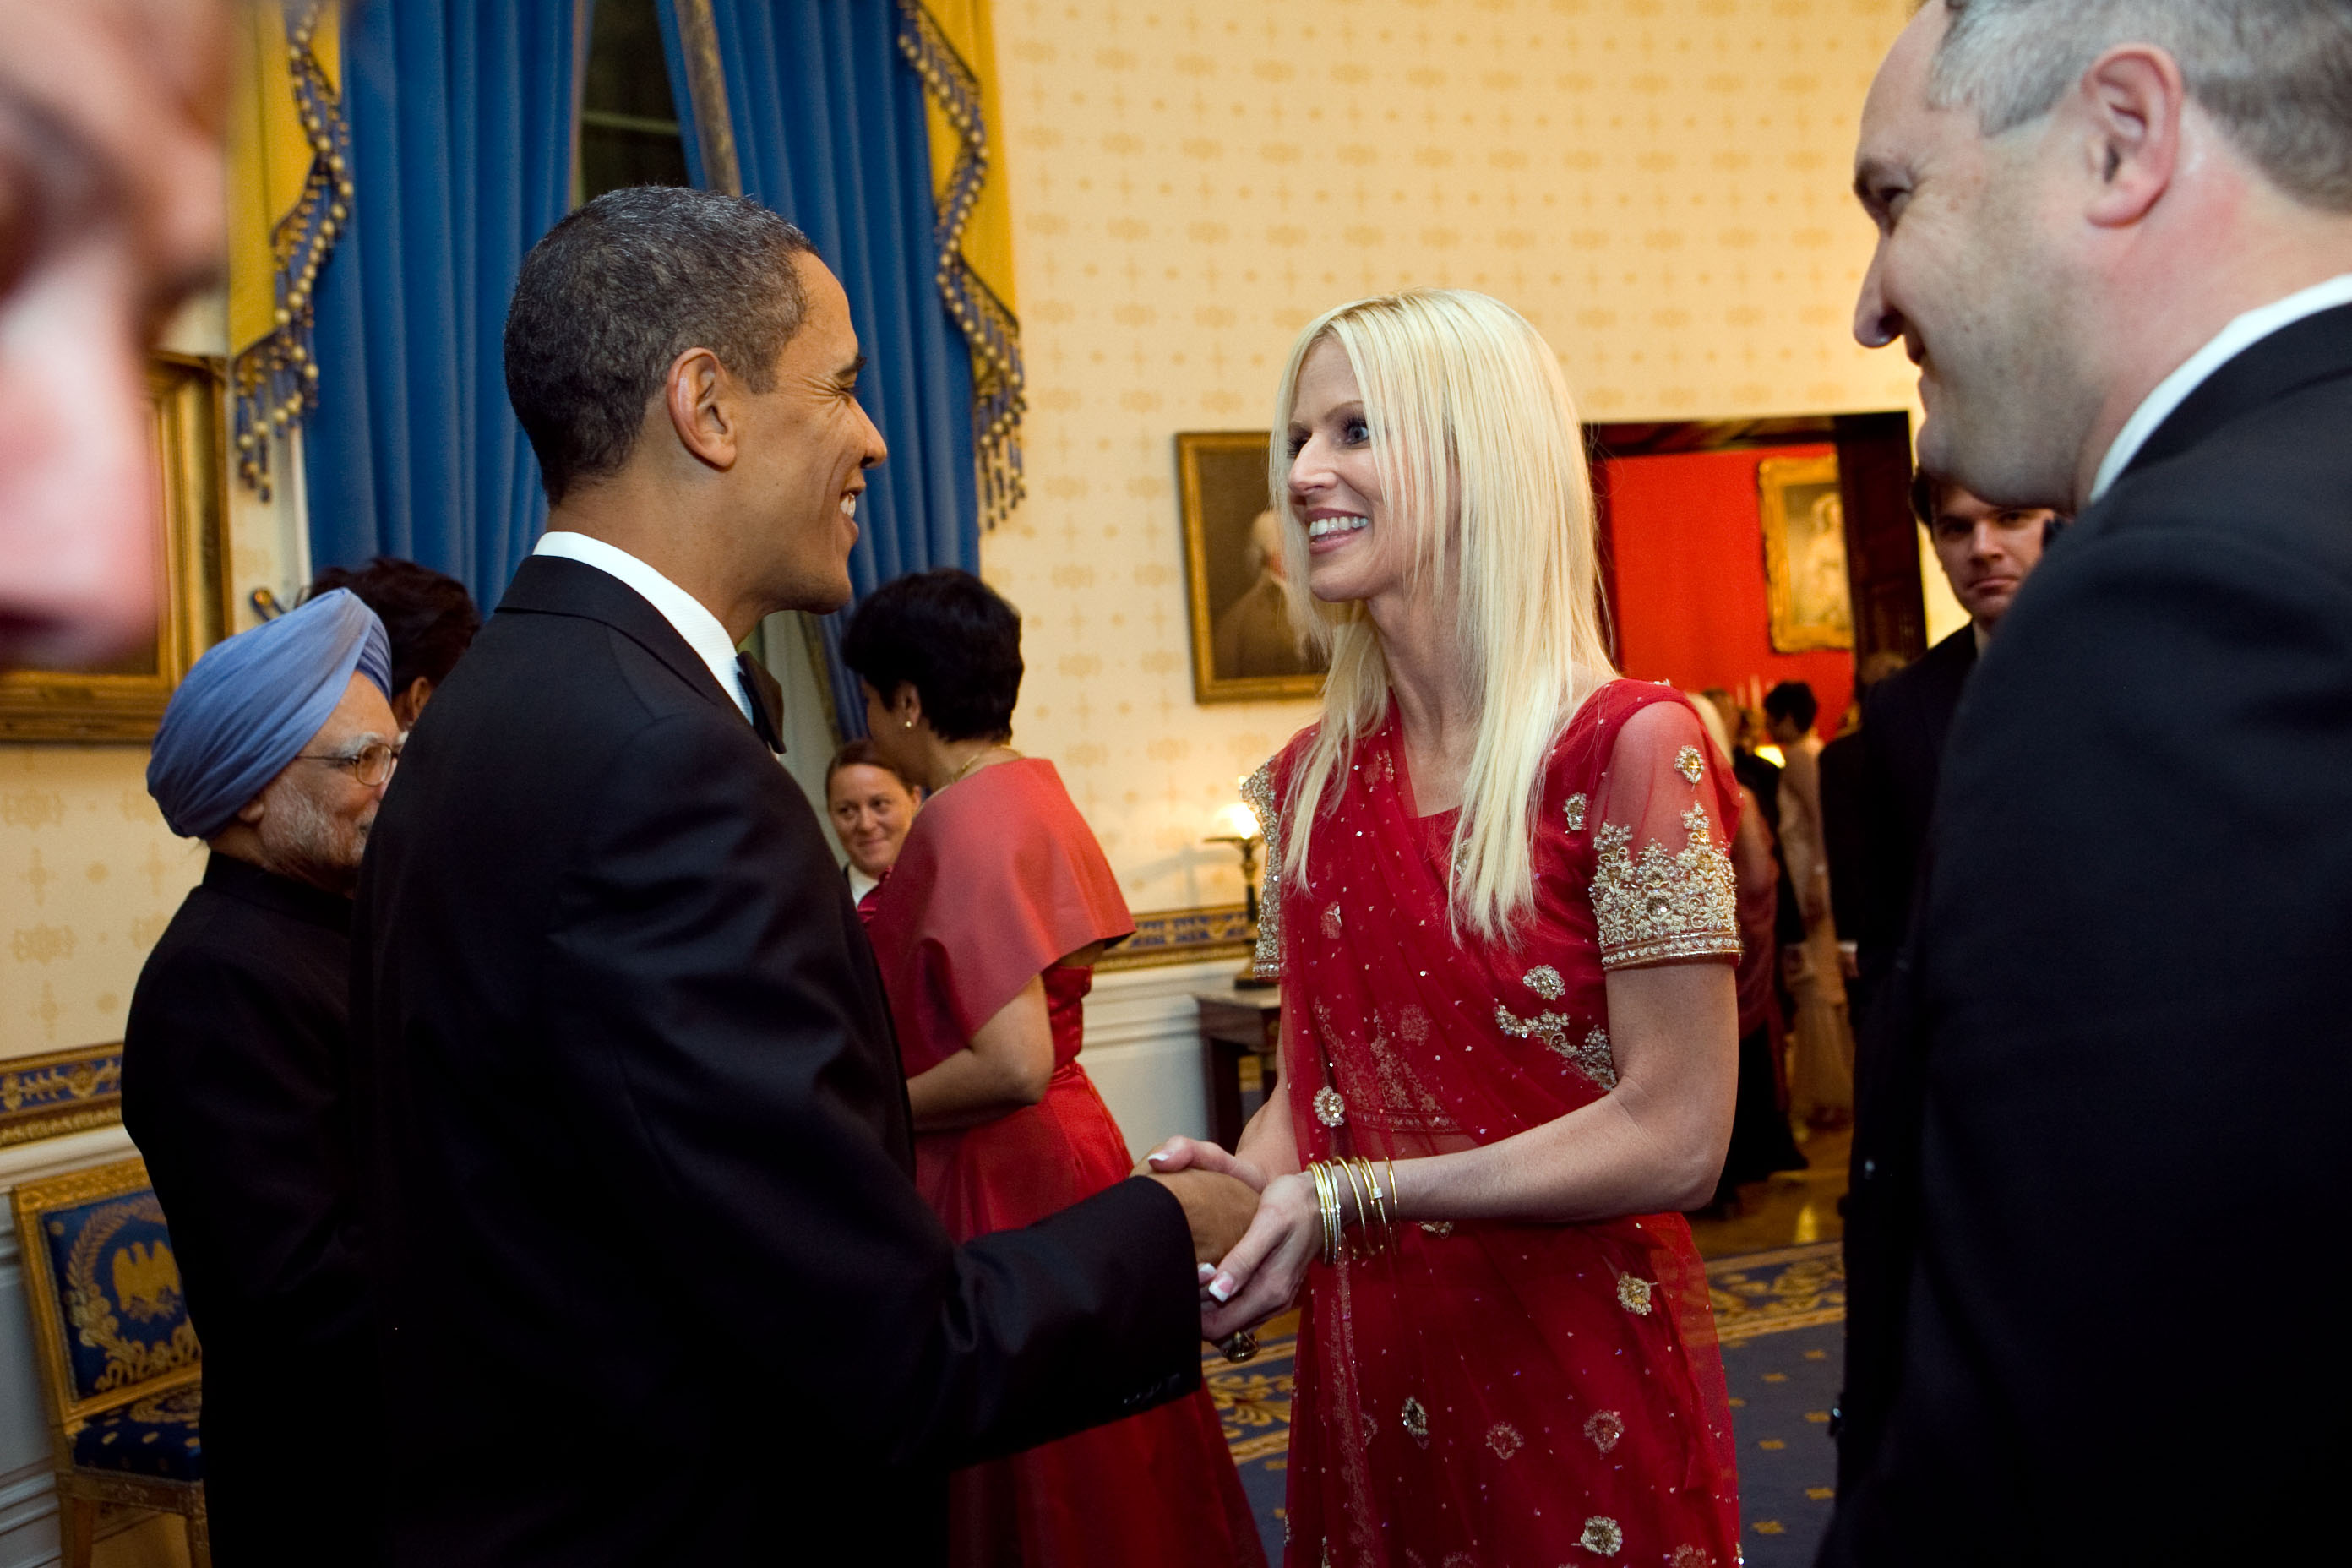 President Barack Obama greets Michaele and Tareq Salahi